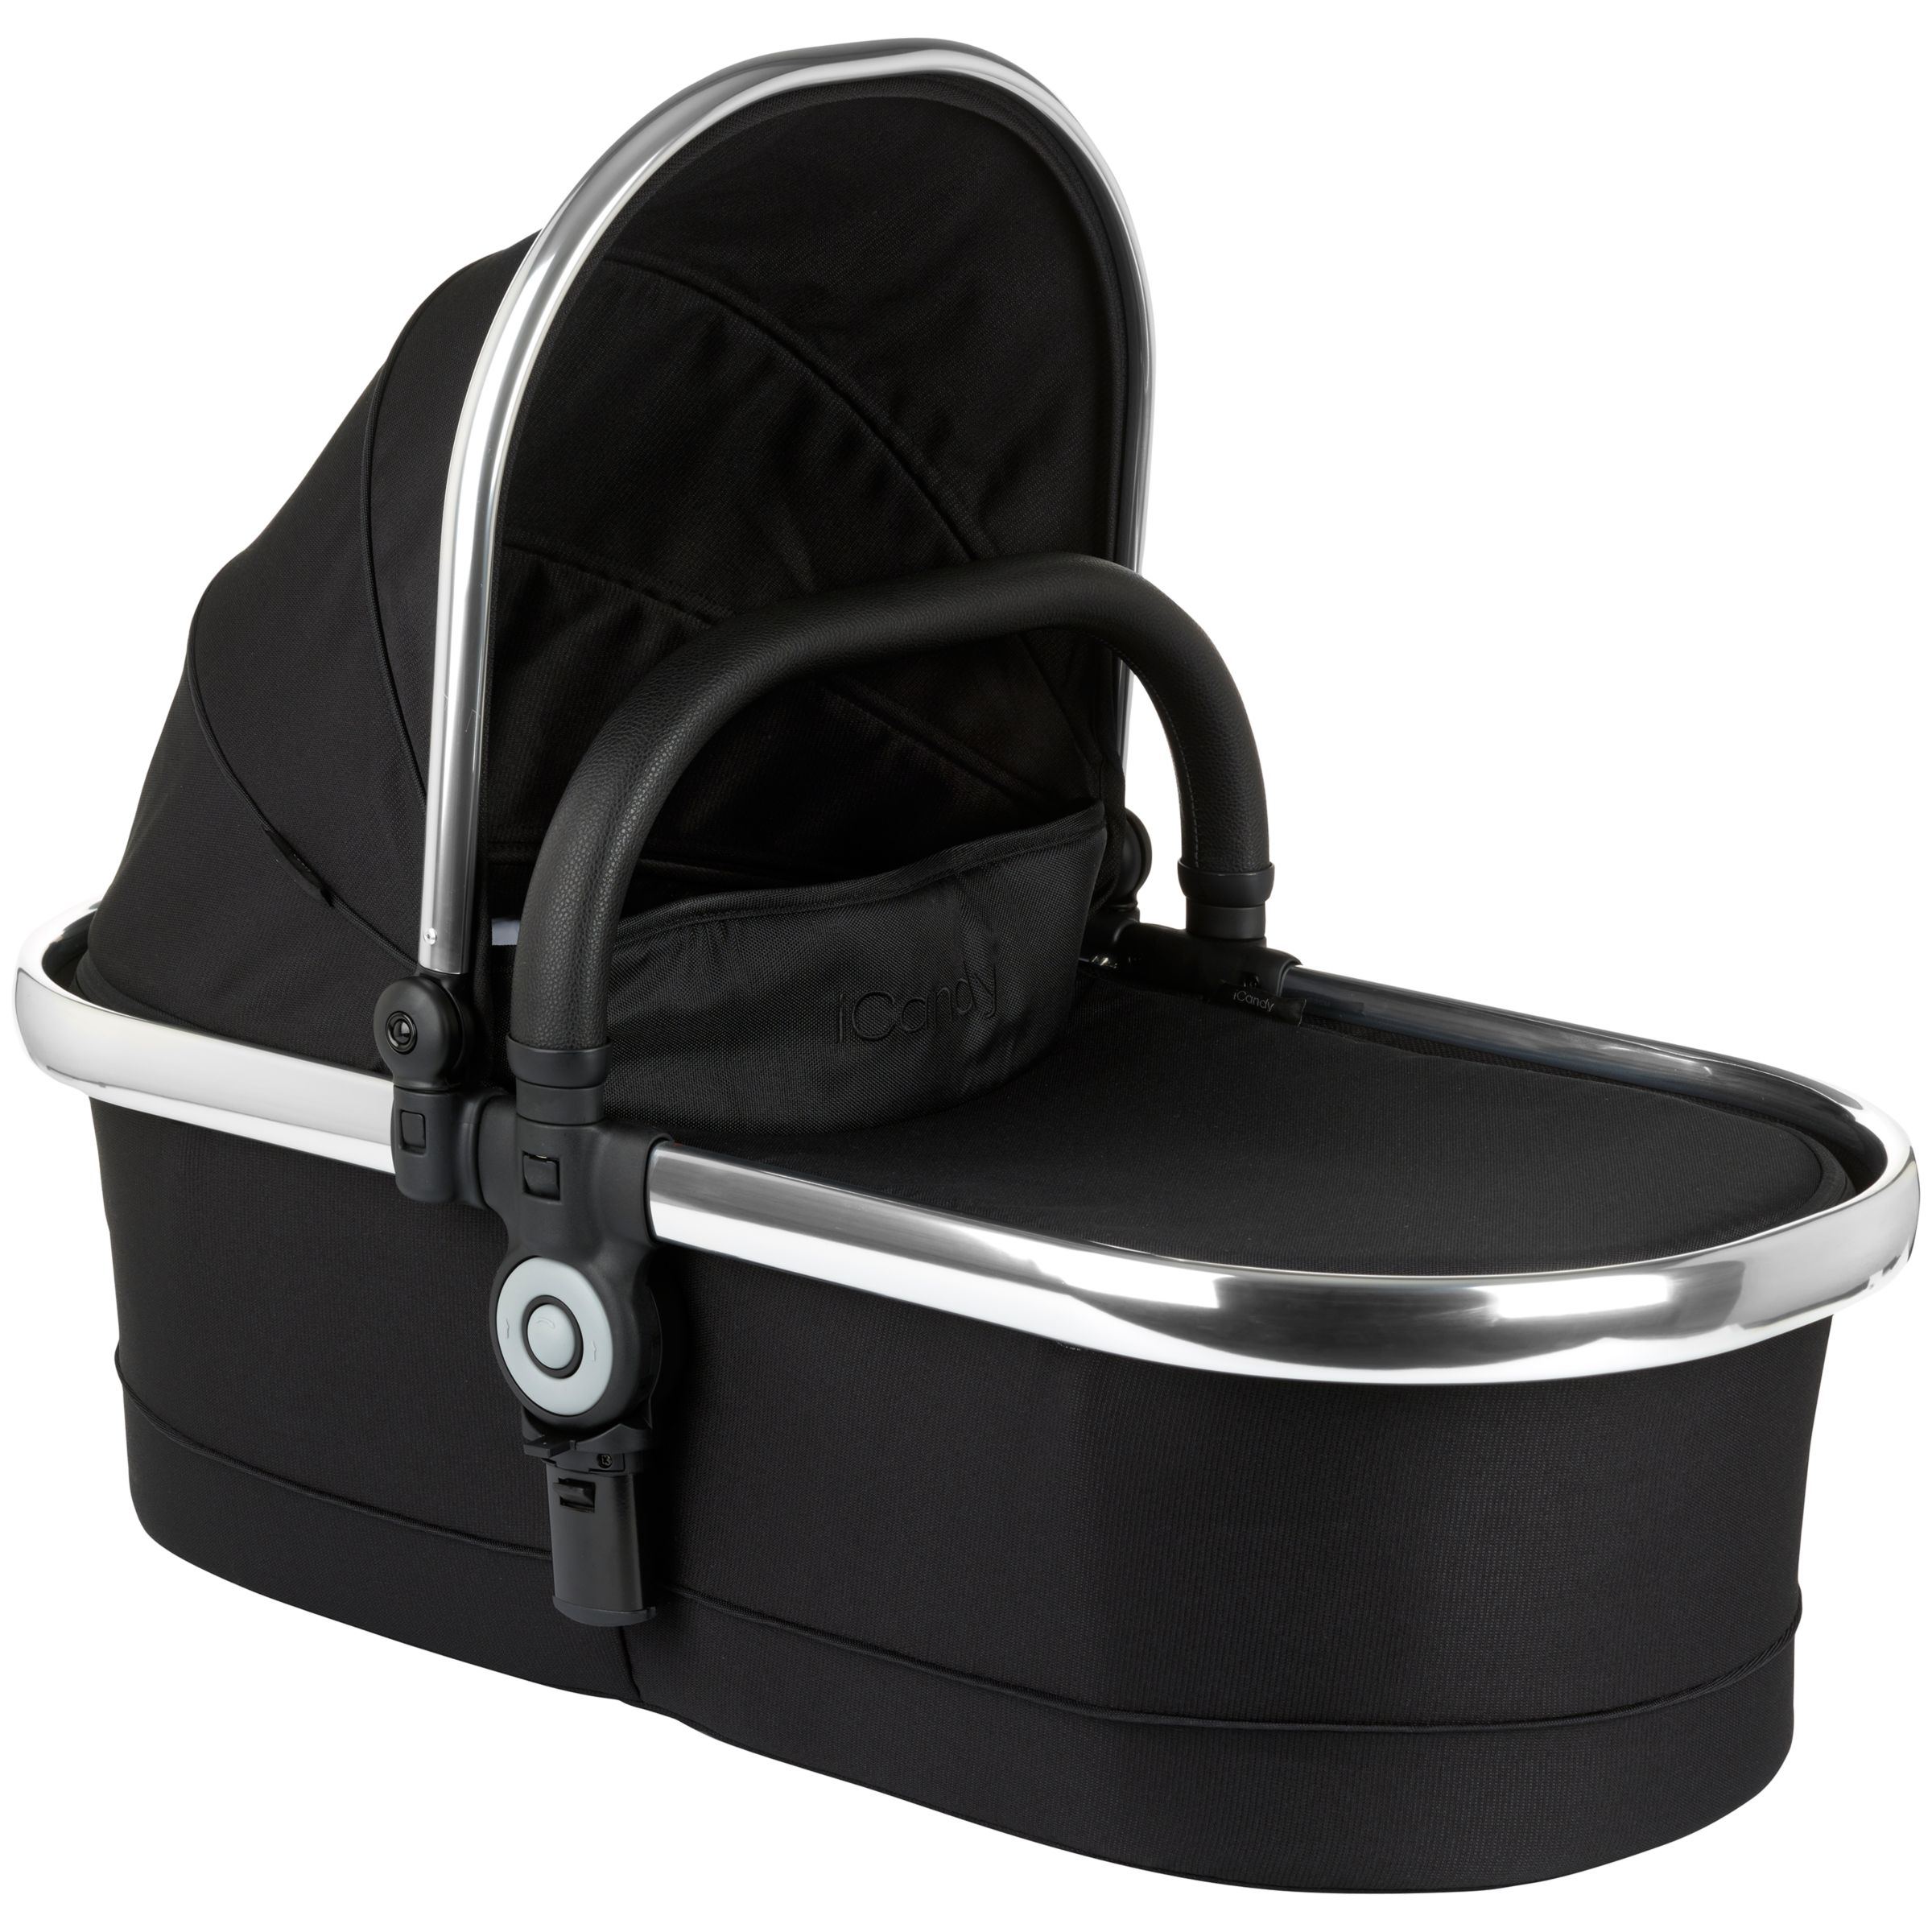 iCandy iCandy Peach Carrycot, Black Magic 2